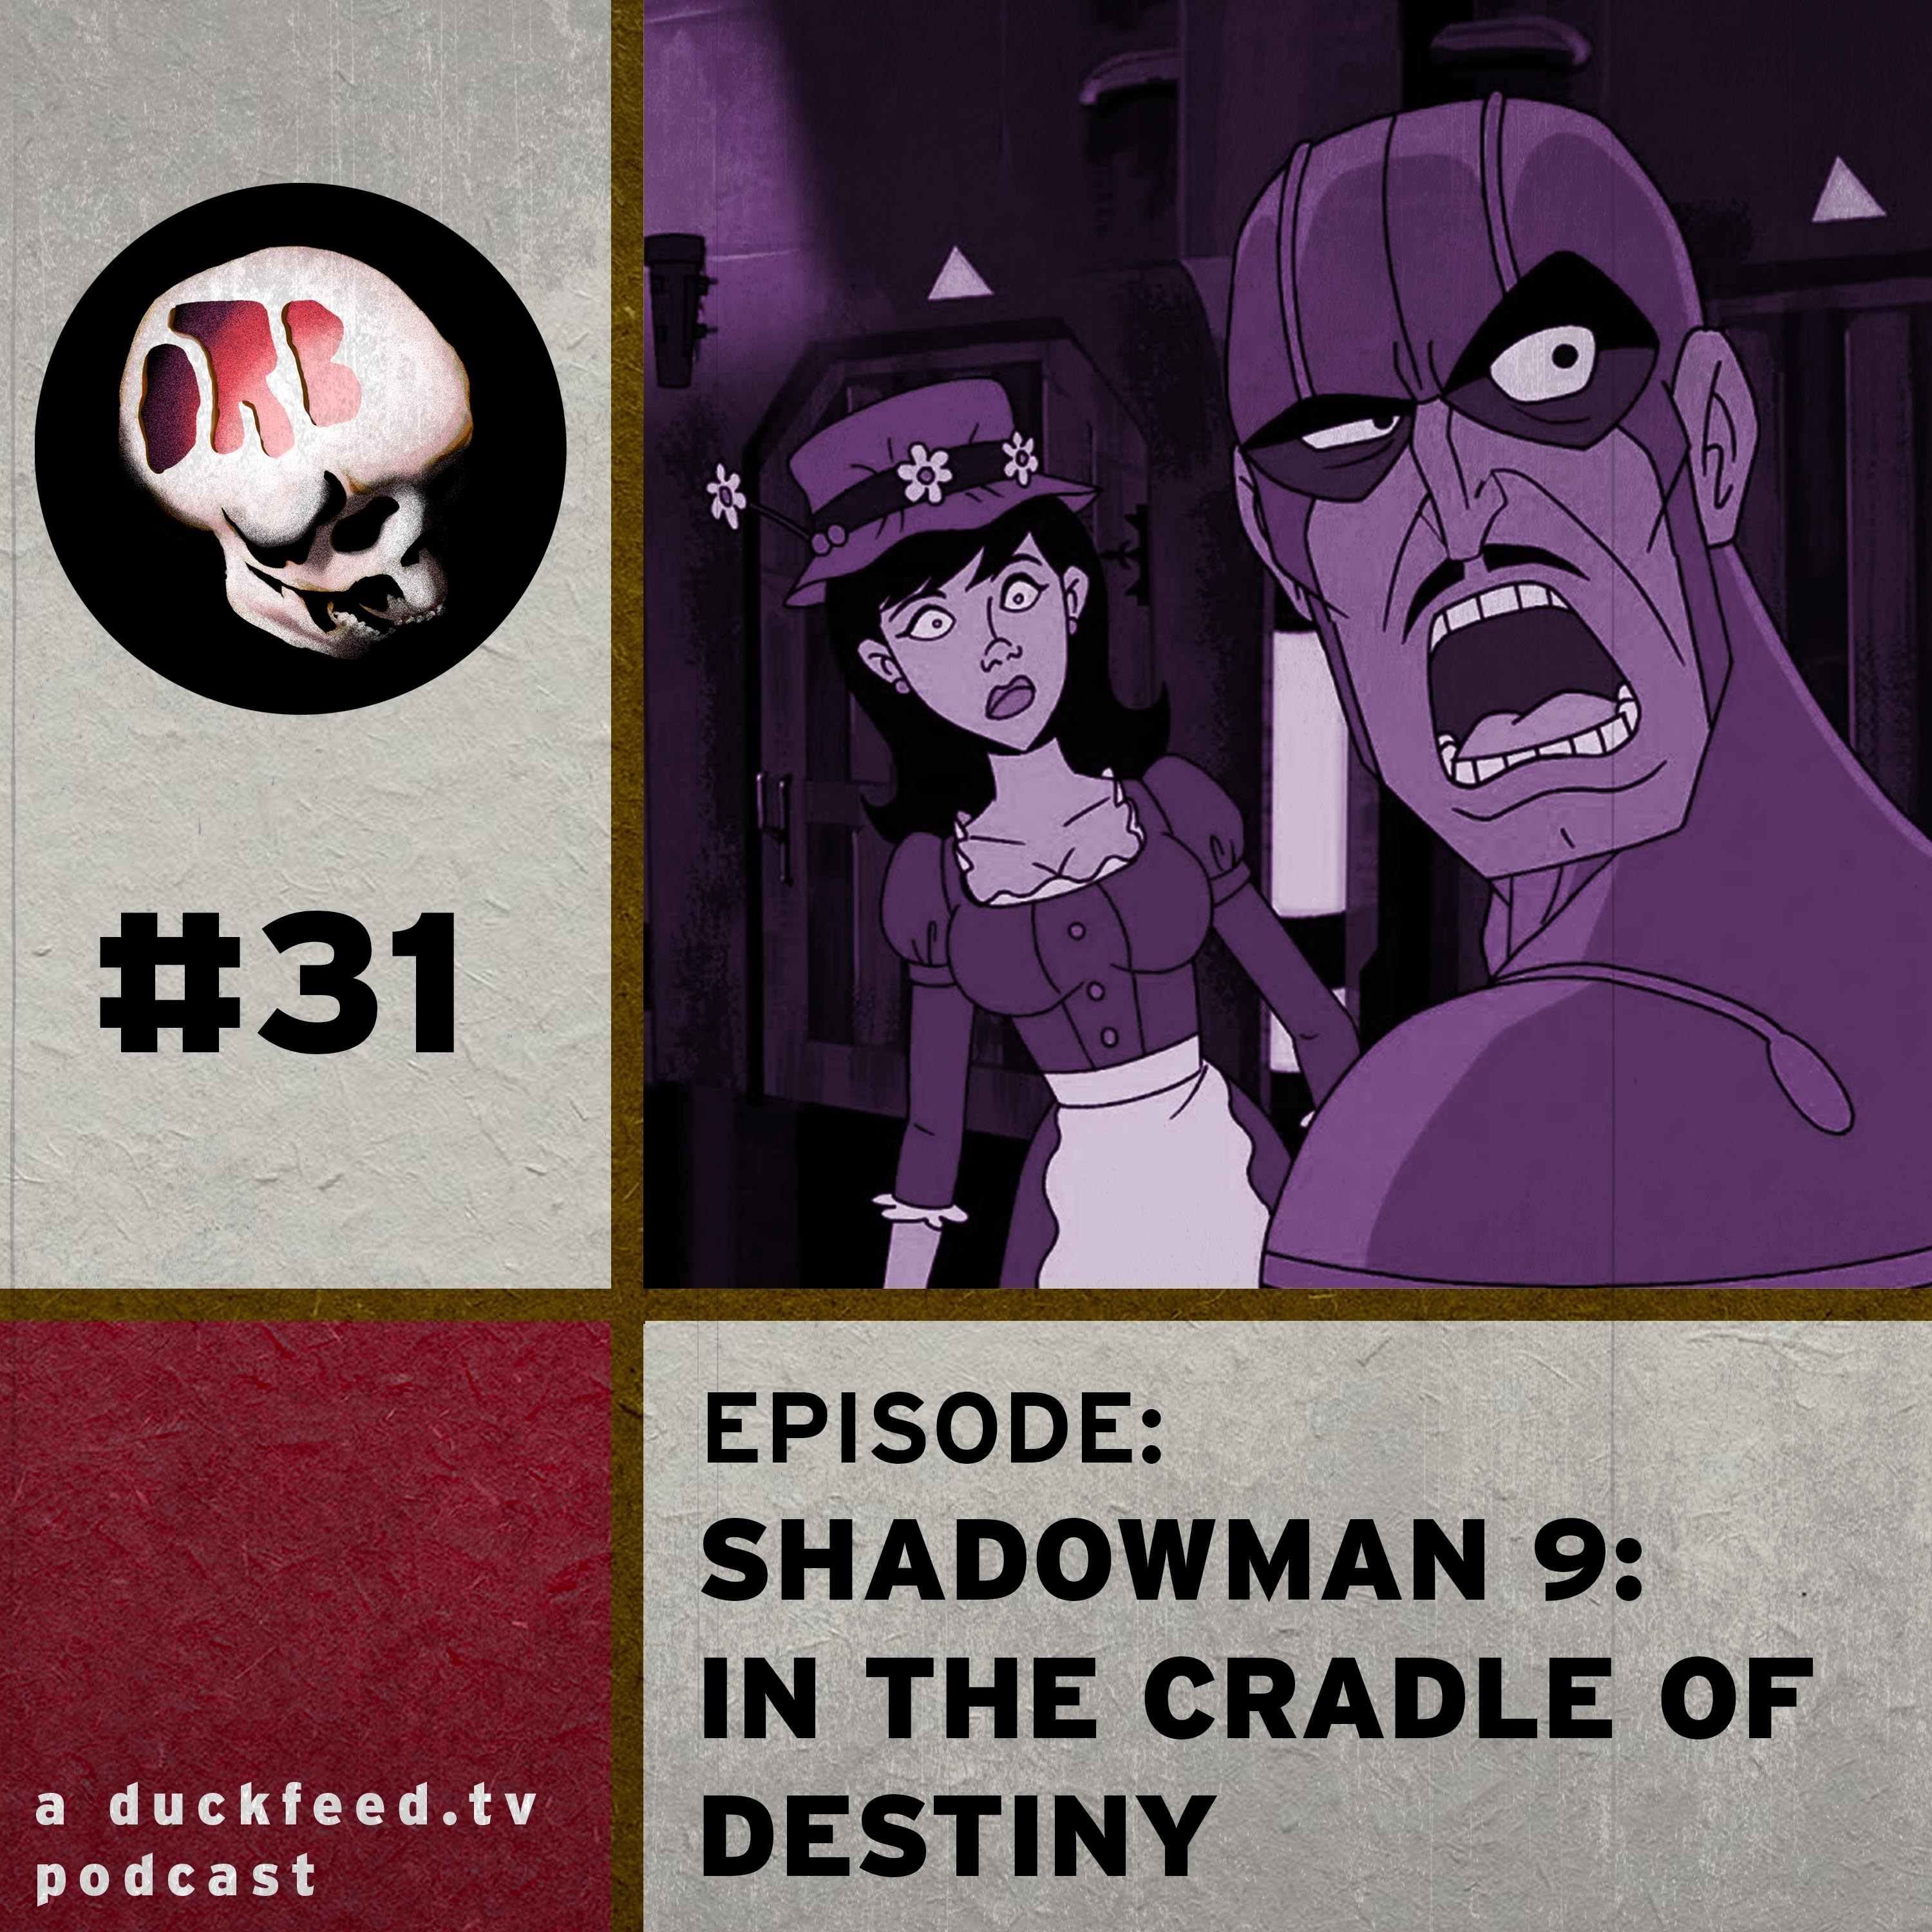 Episode 31: Shadowman 9: In the Cradle of Destiny